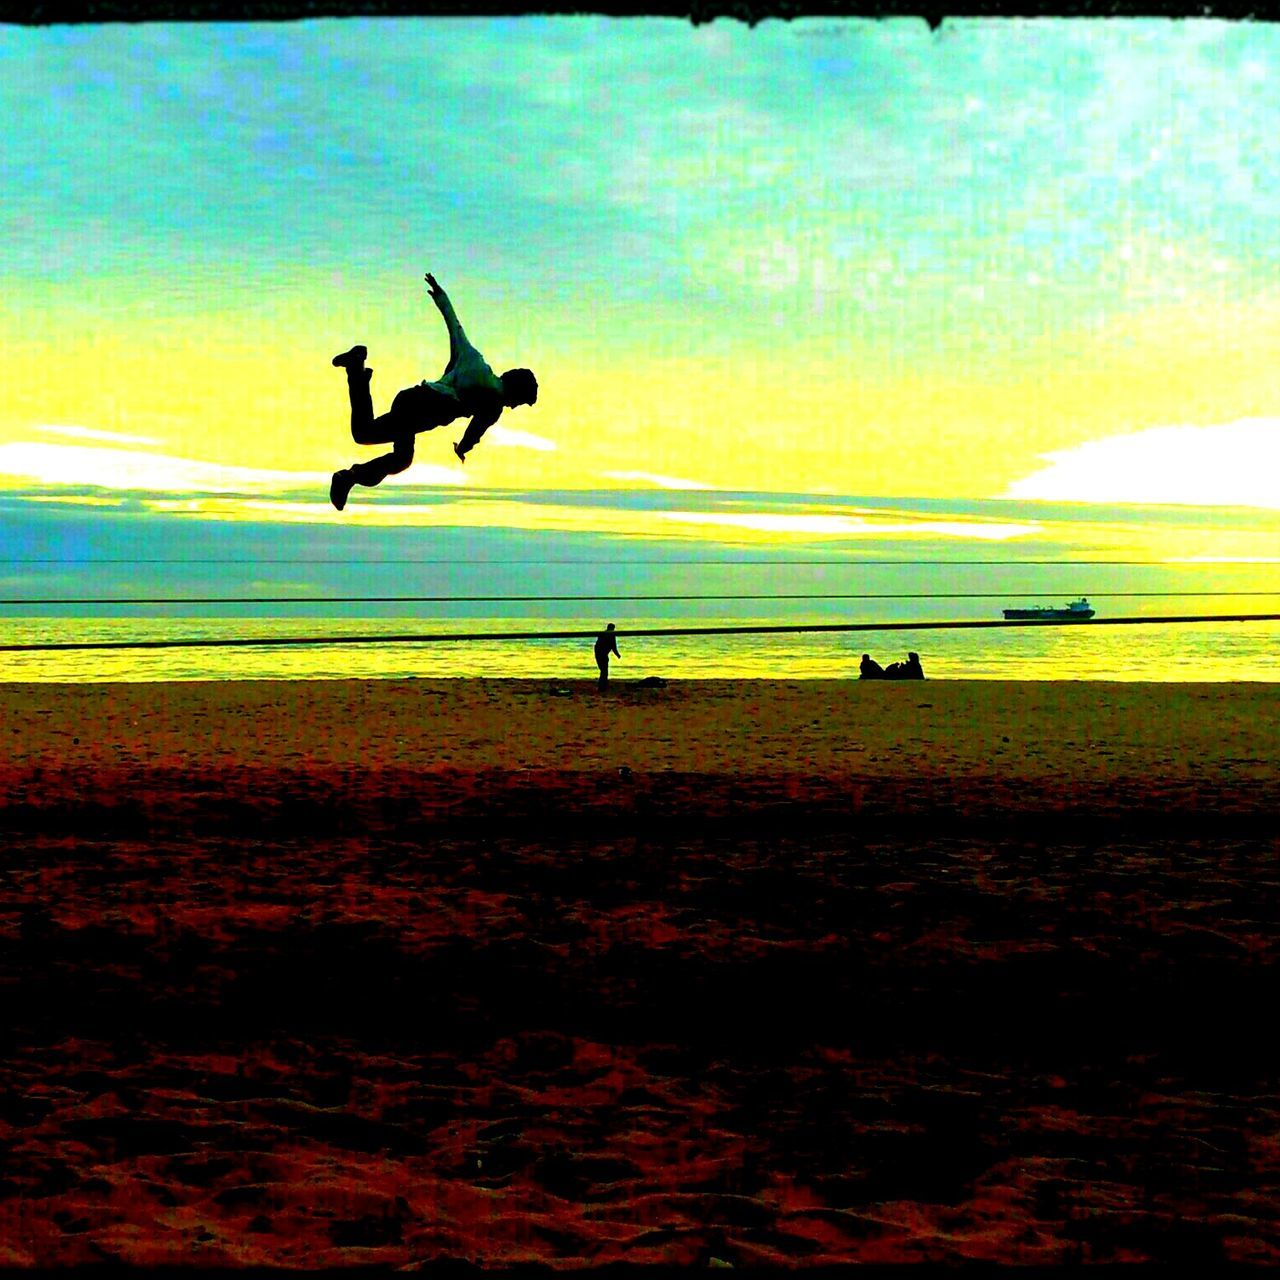 Boneless at Beach. Adventure ClubBoneless At Beach Slackline Slaker En El Aire Viña Del Mar Highline Longline Tricks Las Salinas Slackvida Slacklife Equilibrio Sunset Giros Balance Objetivos Objetivo De Vida💪👌✌👍💉⛅🏥♐‼